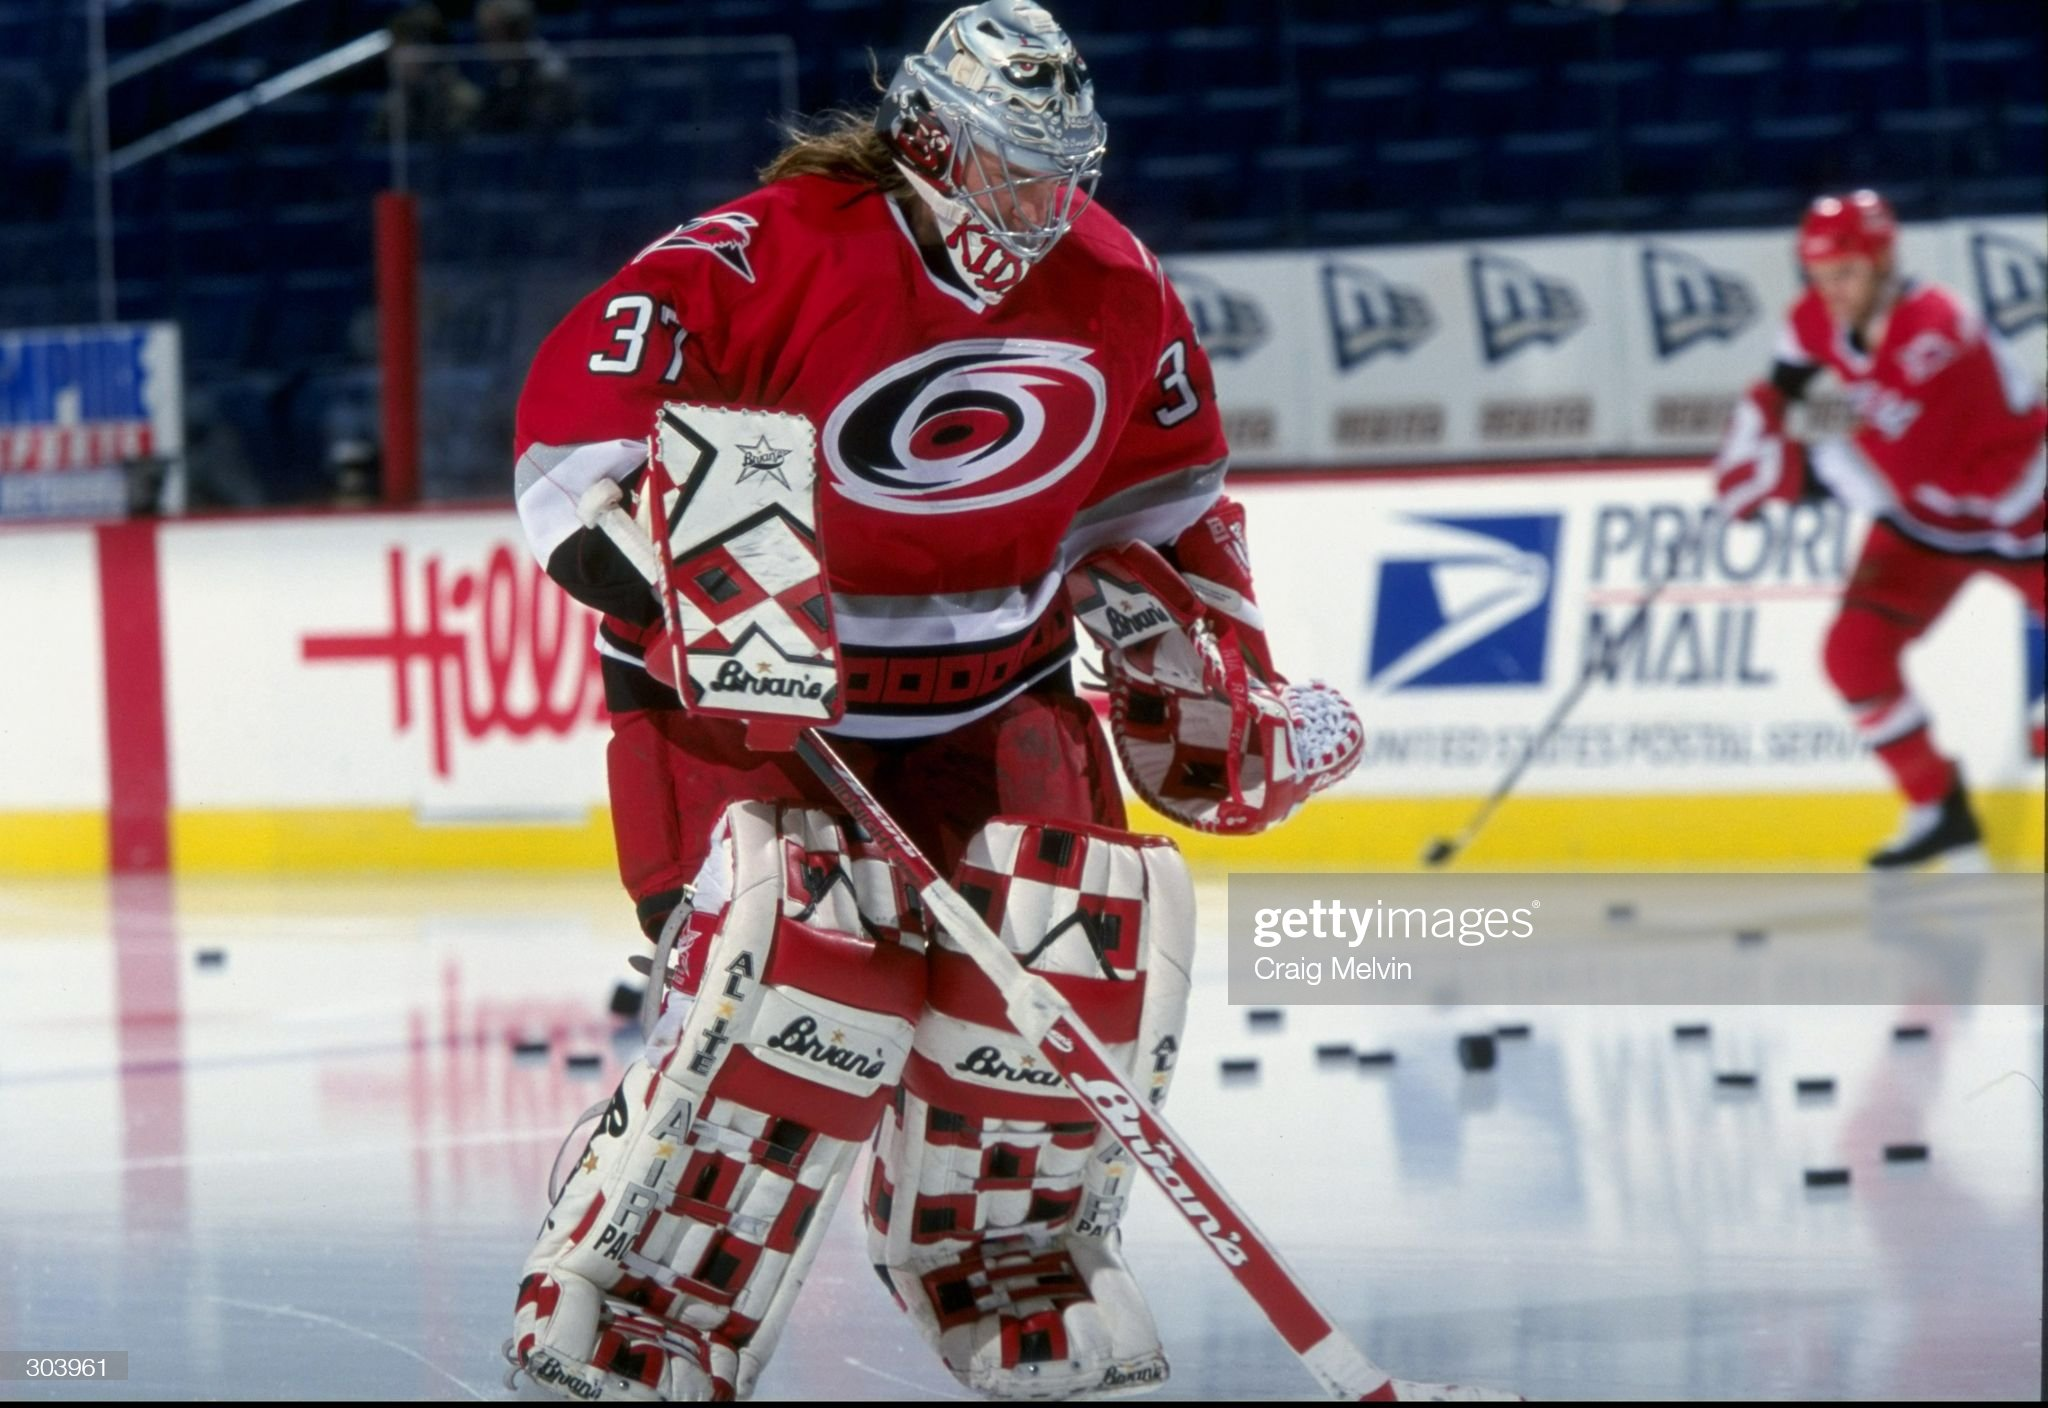 apr-1998-goaltender-trevor-kidd-of-the-c